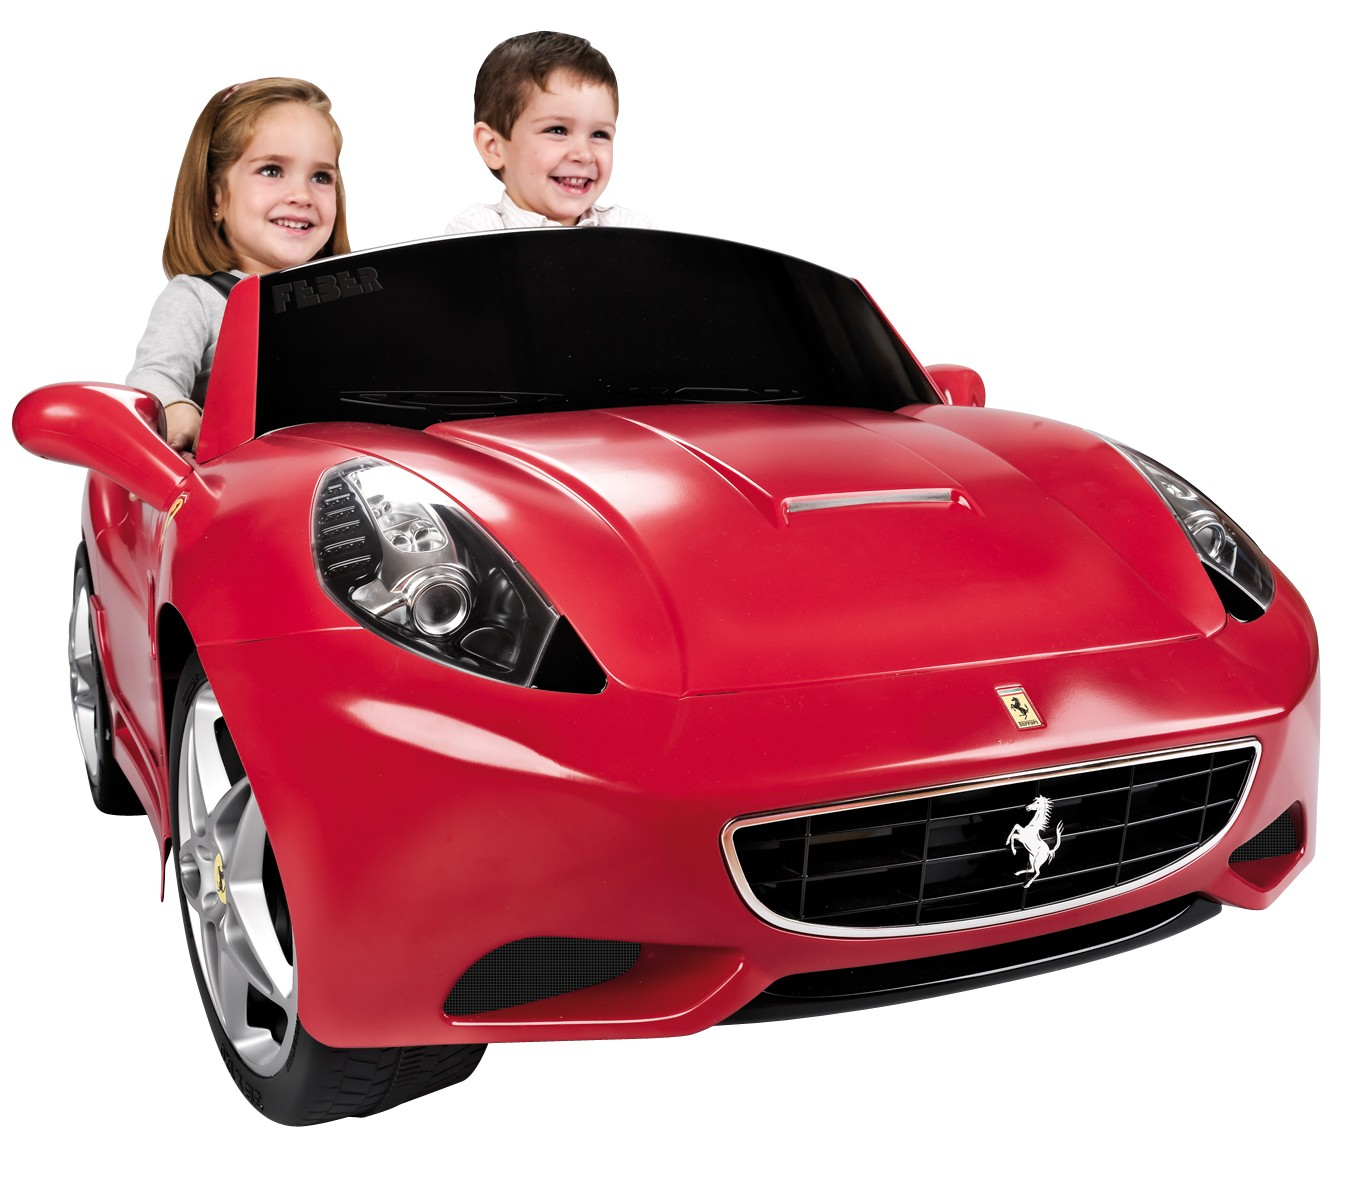 Ferrari California V Electric Ride On Car